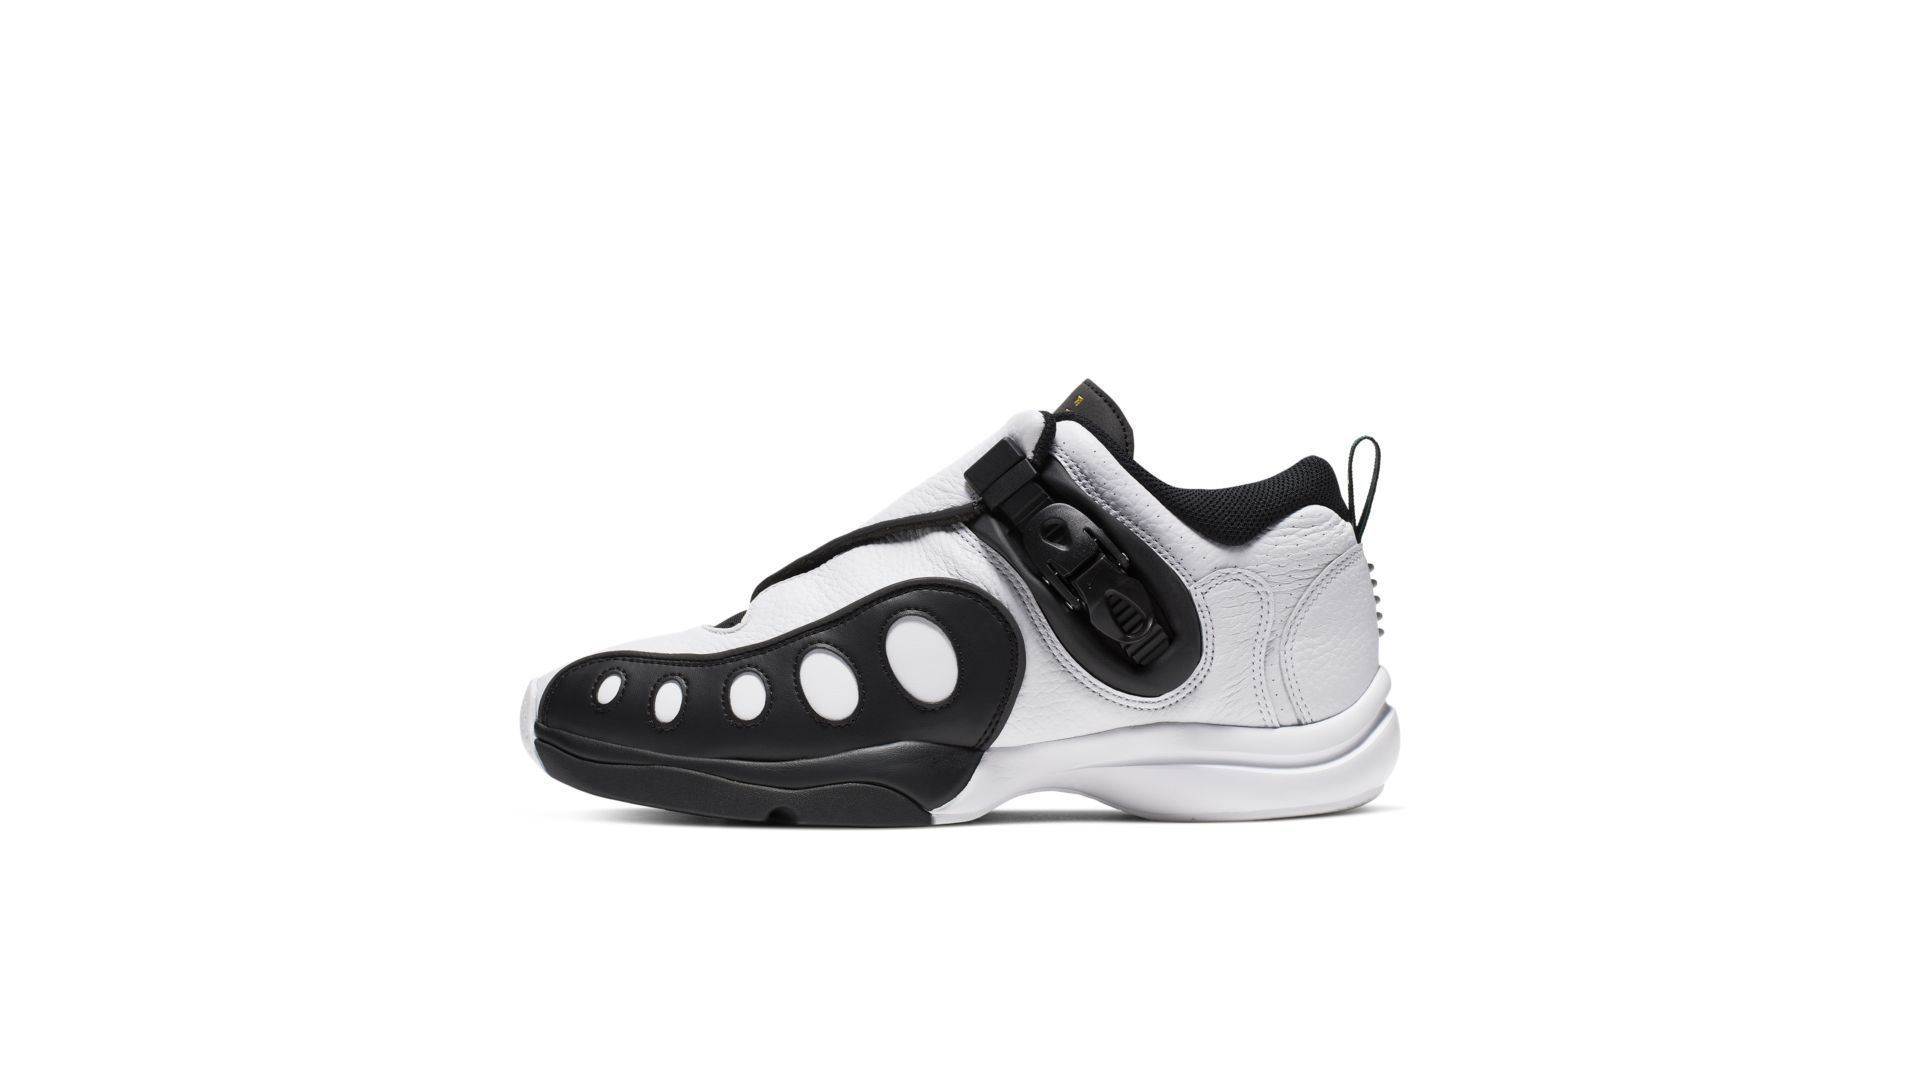 Nike Zoom GP 'Black & White' (AR4342-100)